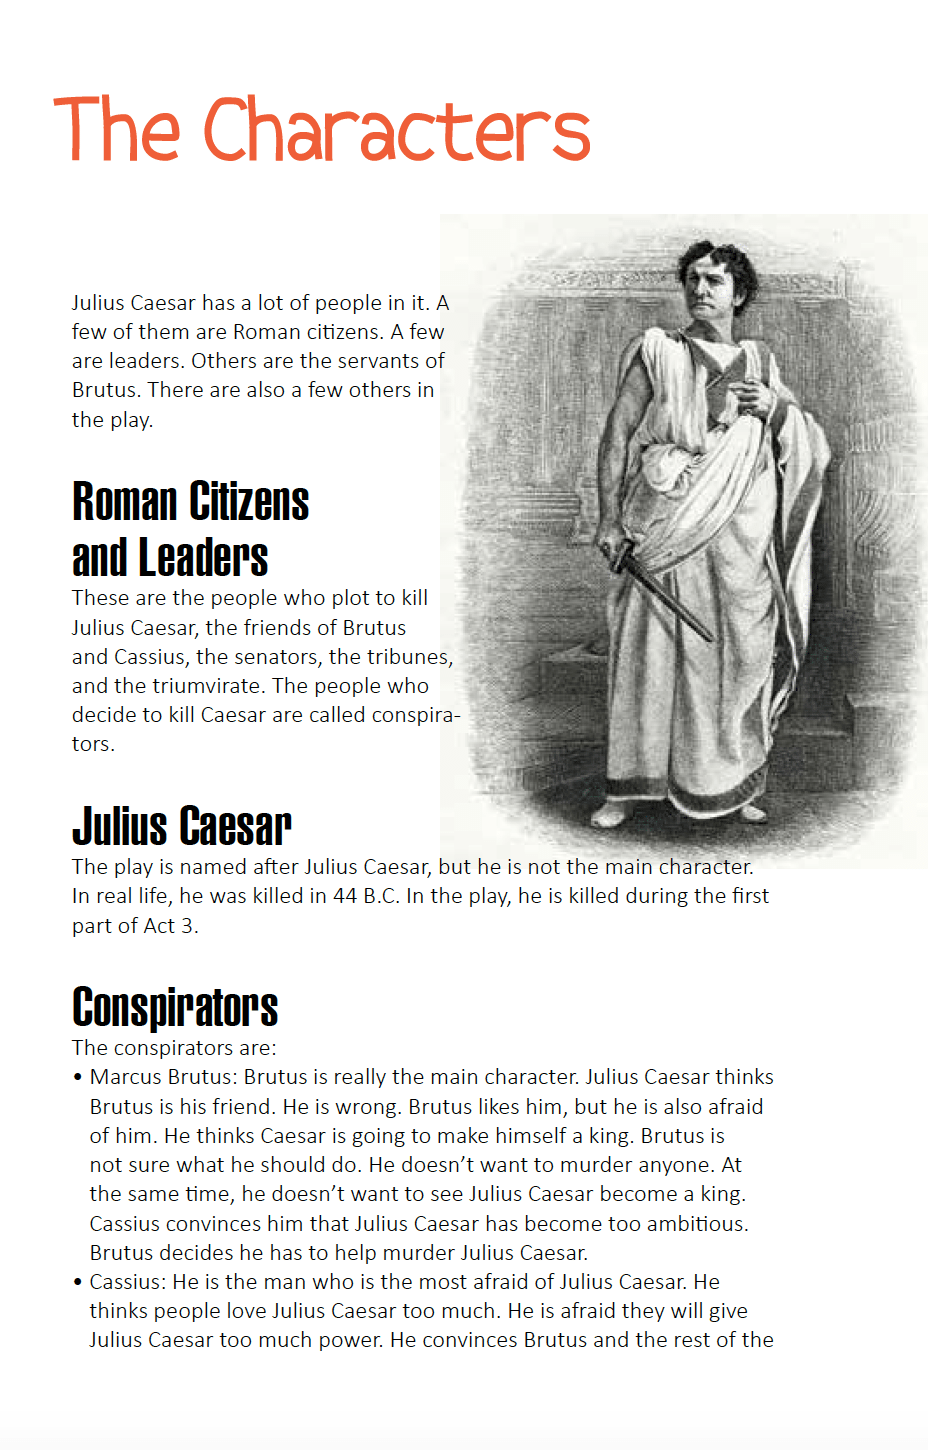 comparison of julius caesar and czar Comparative of julius caesar and czar nicholas ll julius caesar was born on july 13, 100 bc, he was a strong leader for the romans who changed the course of history of the roman world decisively and irreversibly.